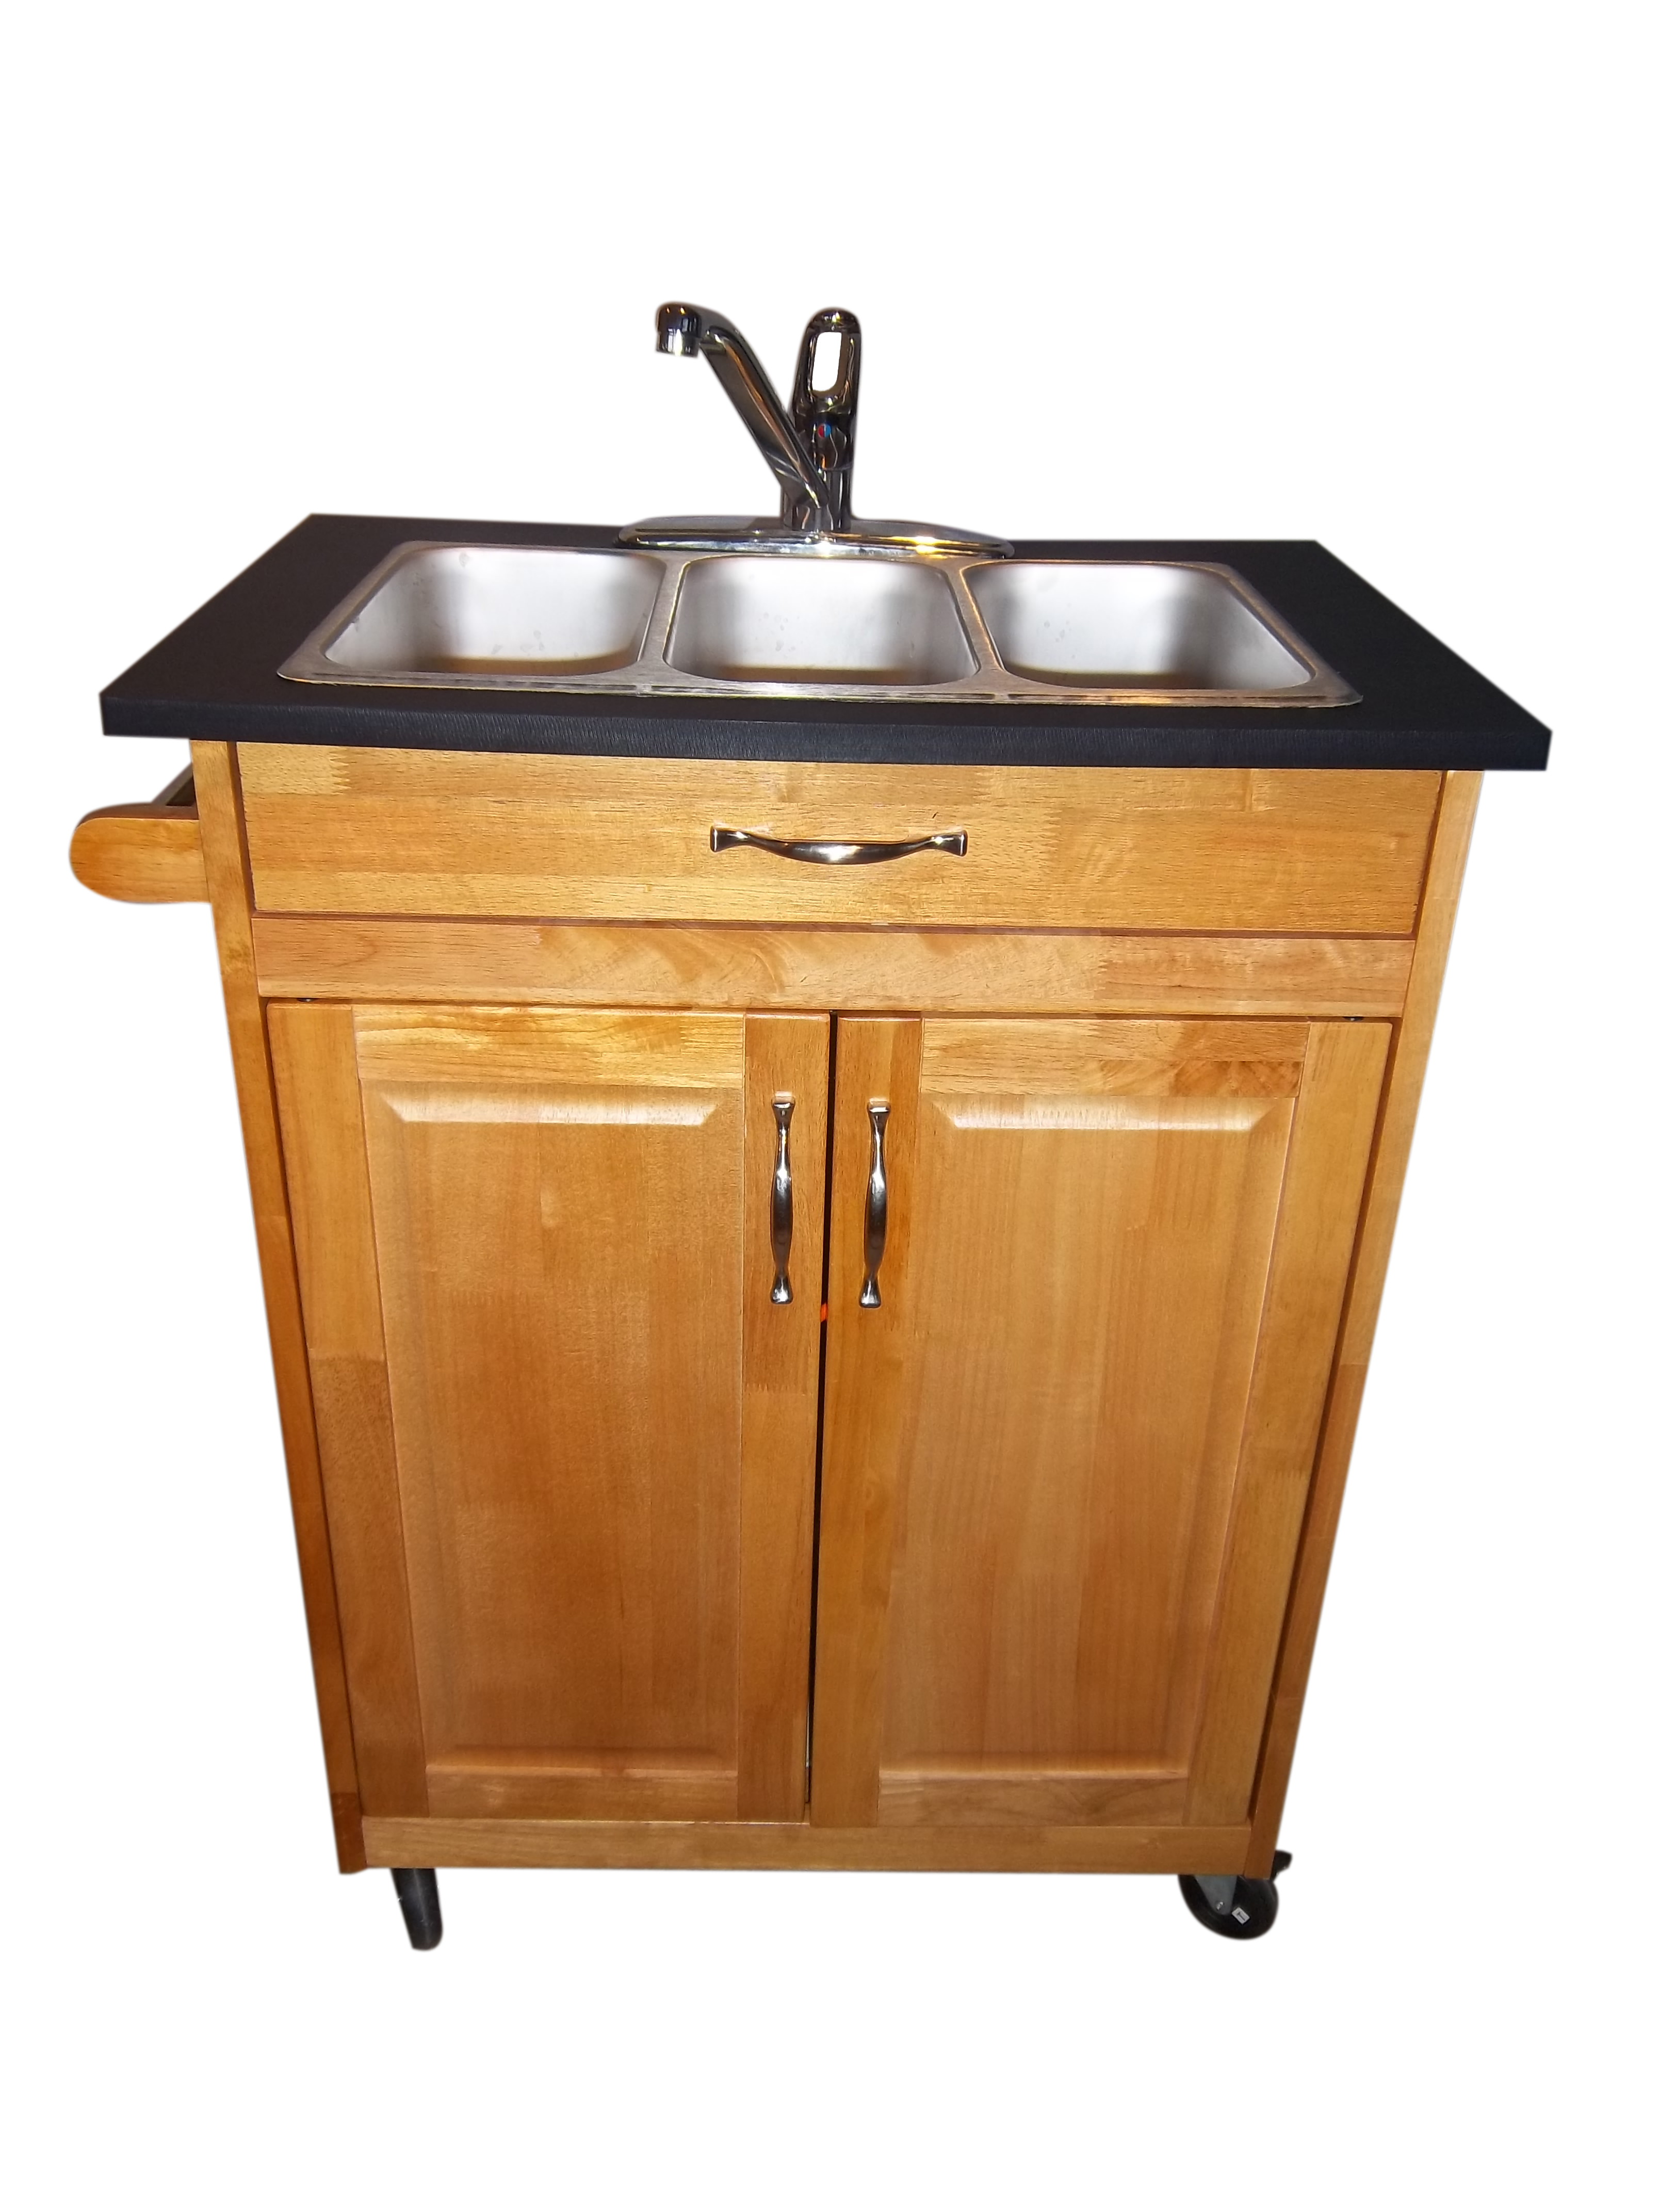 3 Compartment Self Contsined Portable Sink